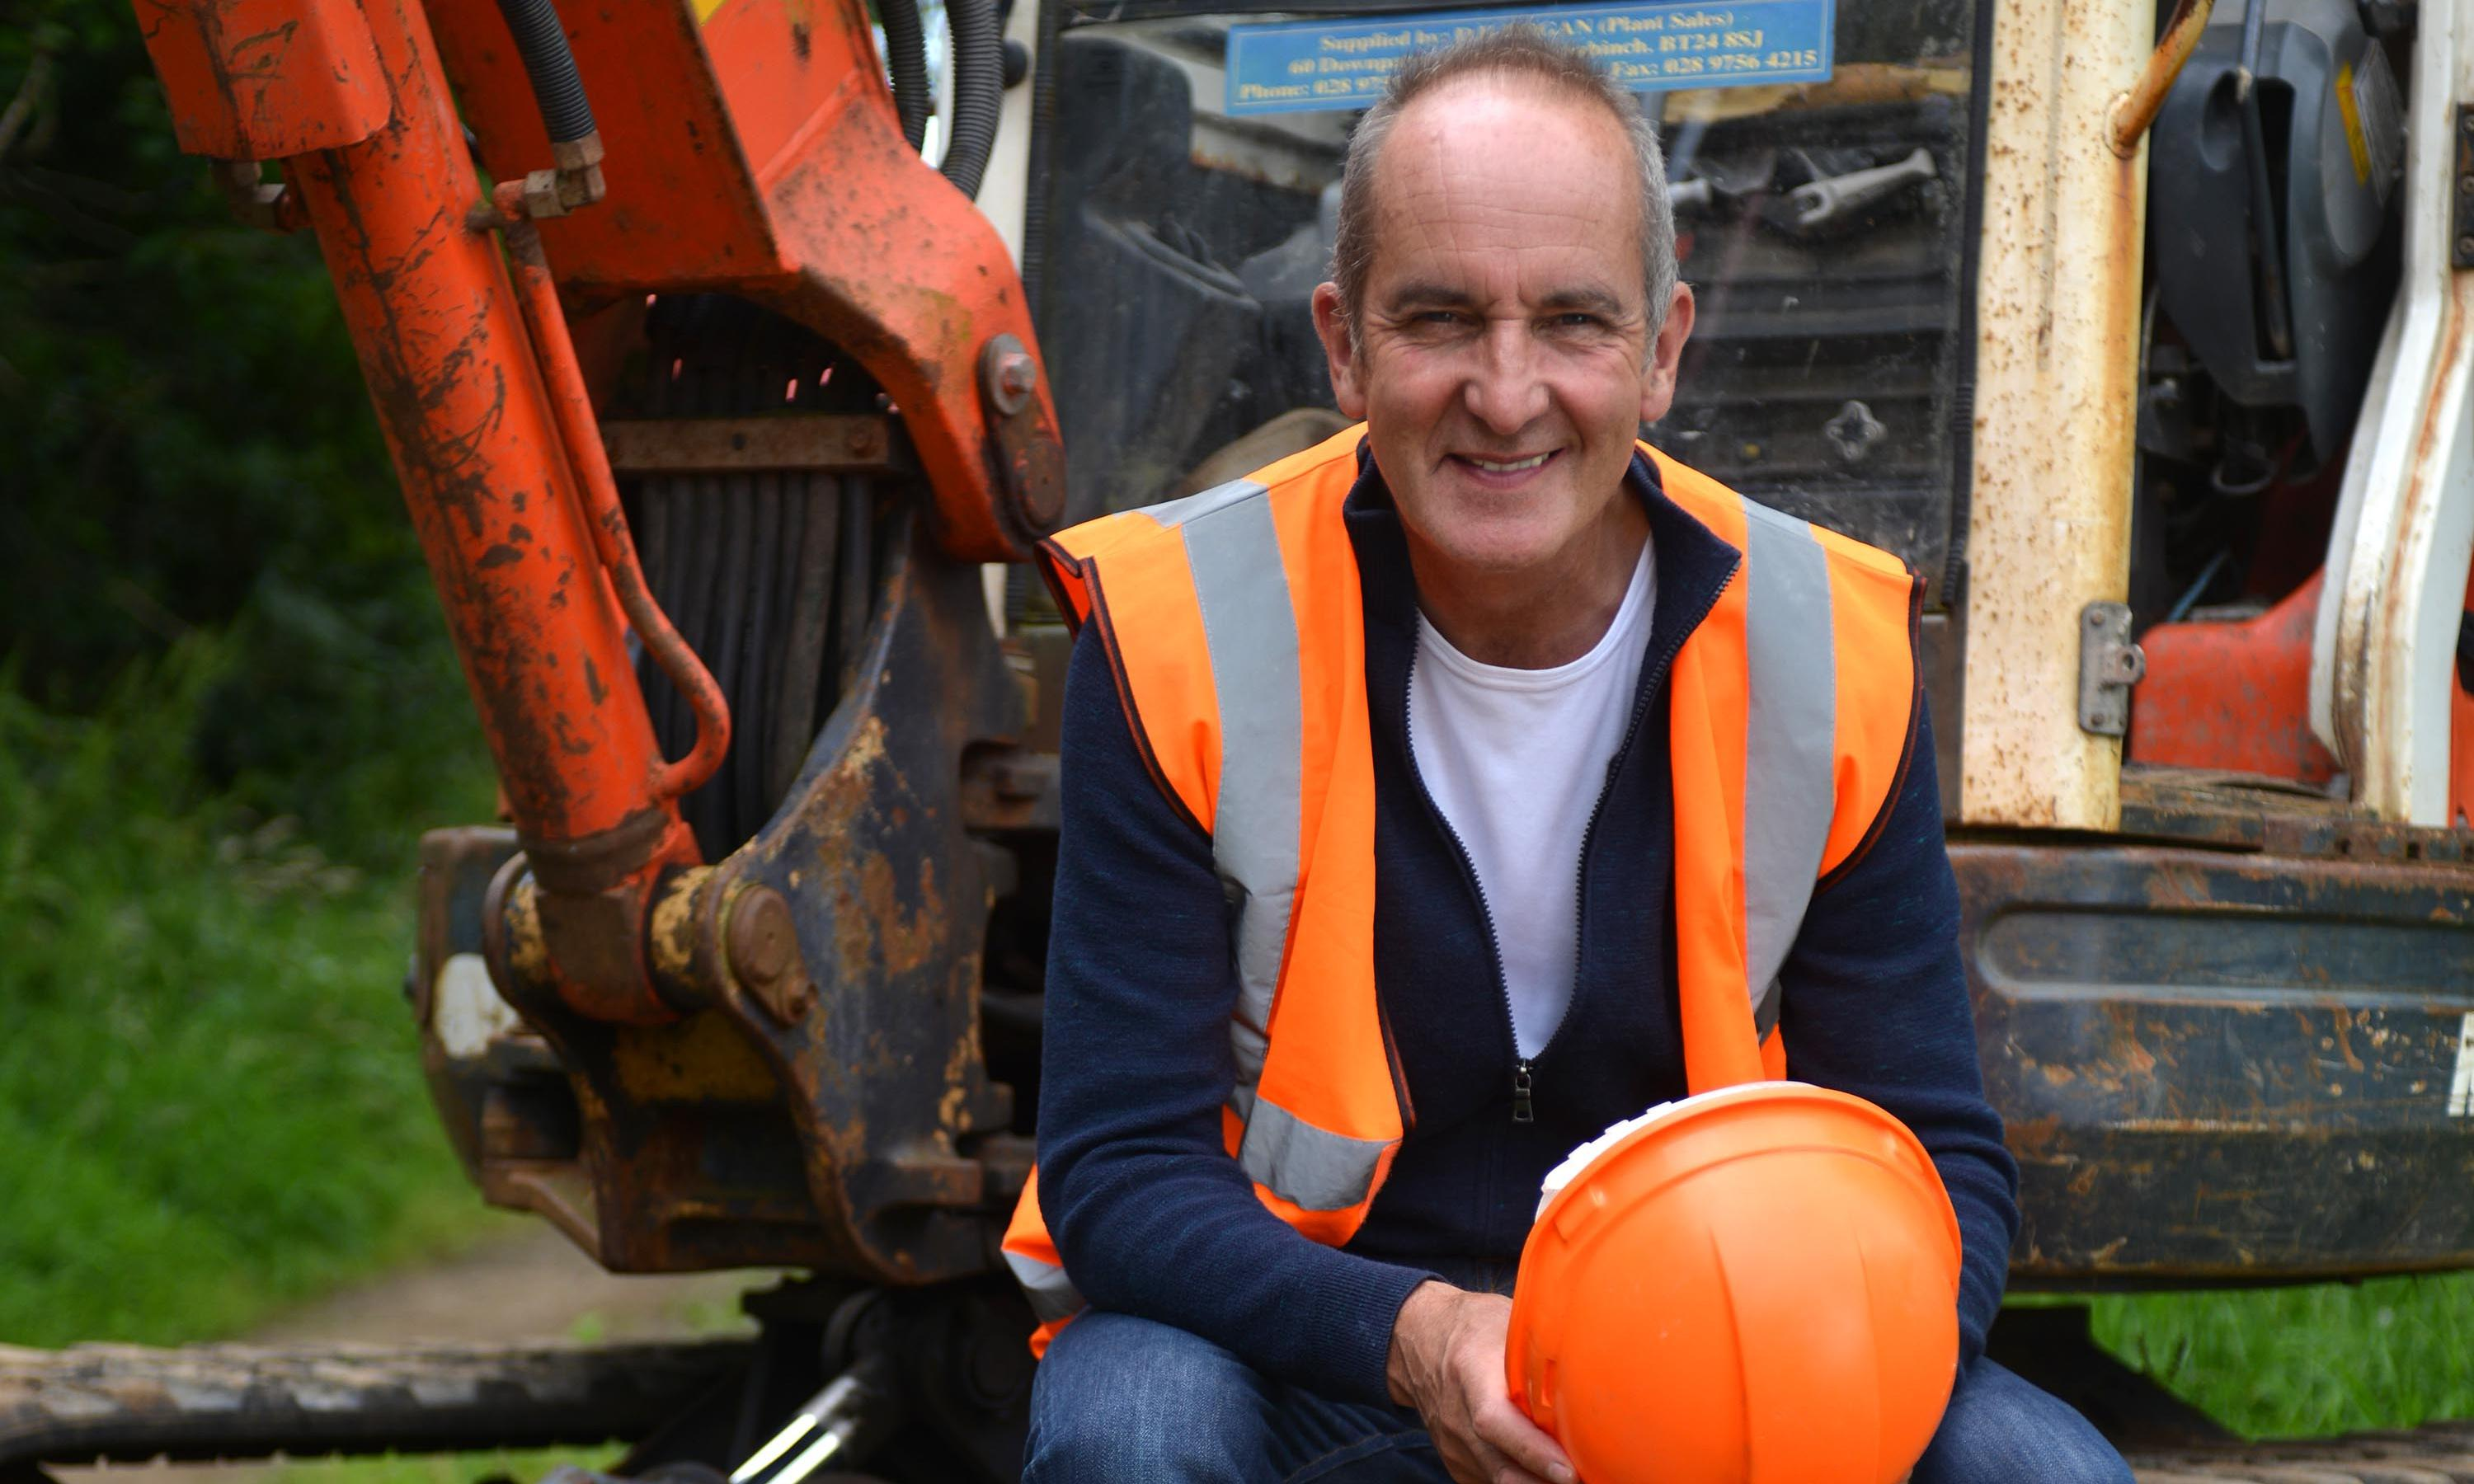 Investors in Kevin McCloud's projects told they face huge losses